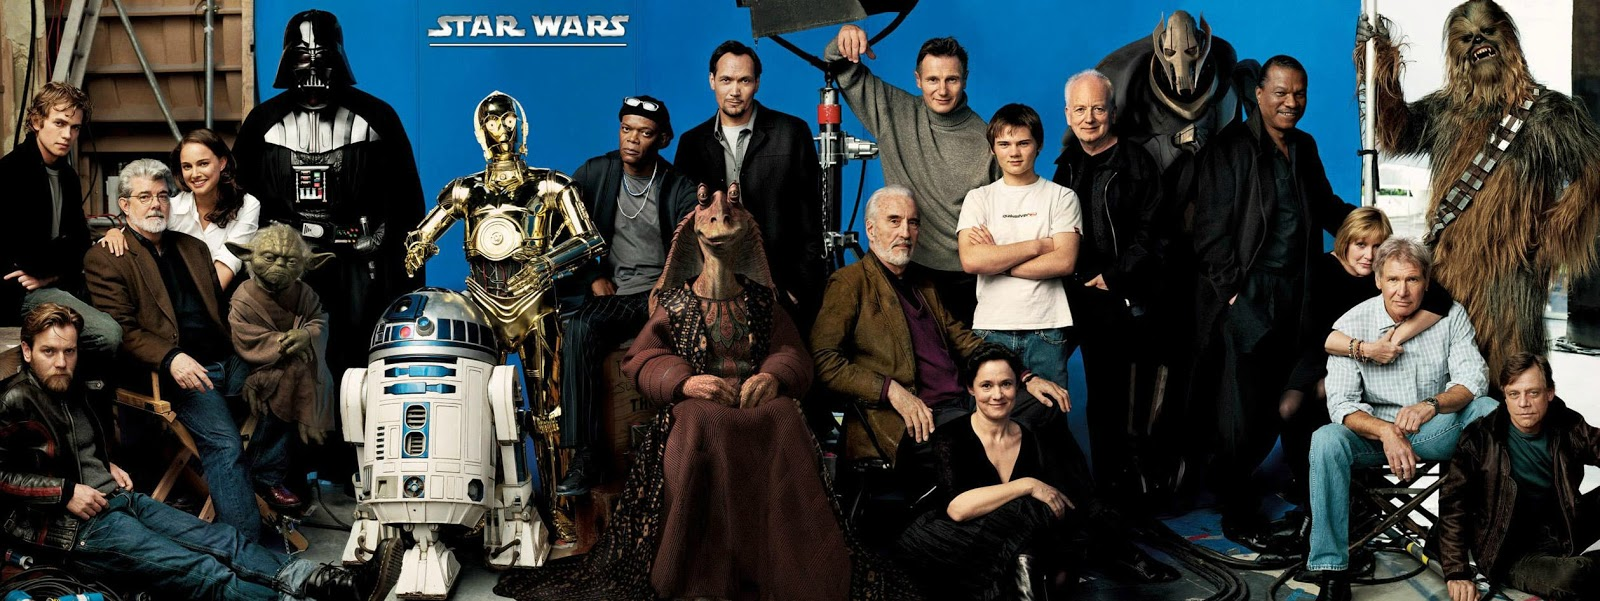 actores de Star Wars